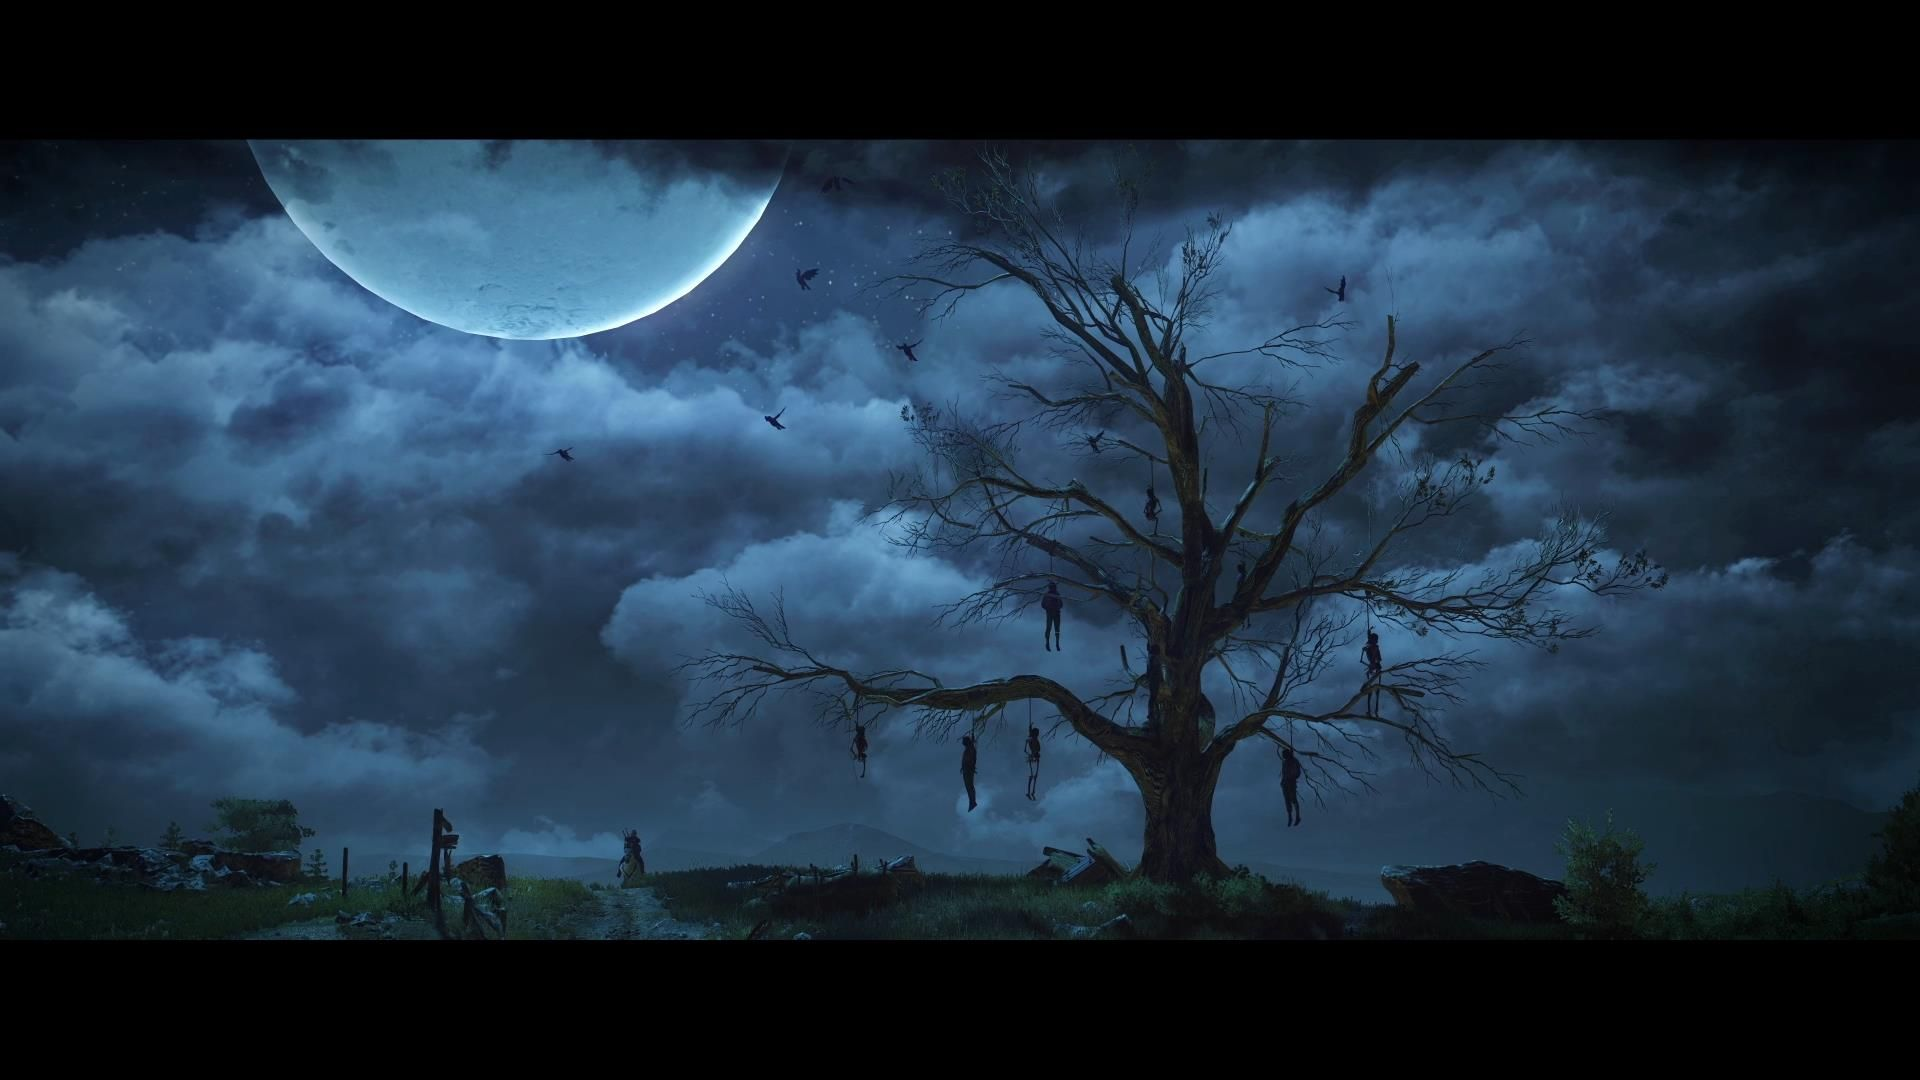 Hanged Man's Tree 1920 1080 (With images) The witcher